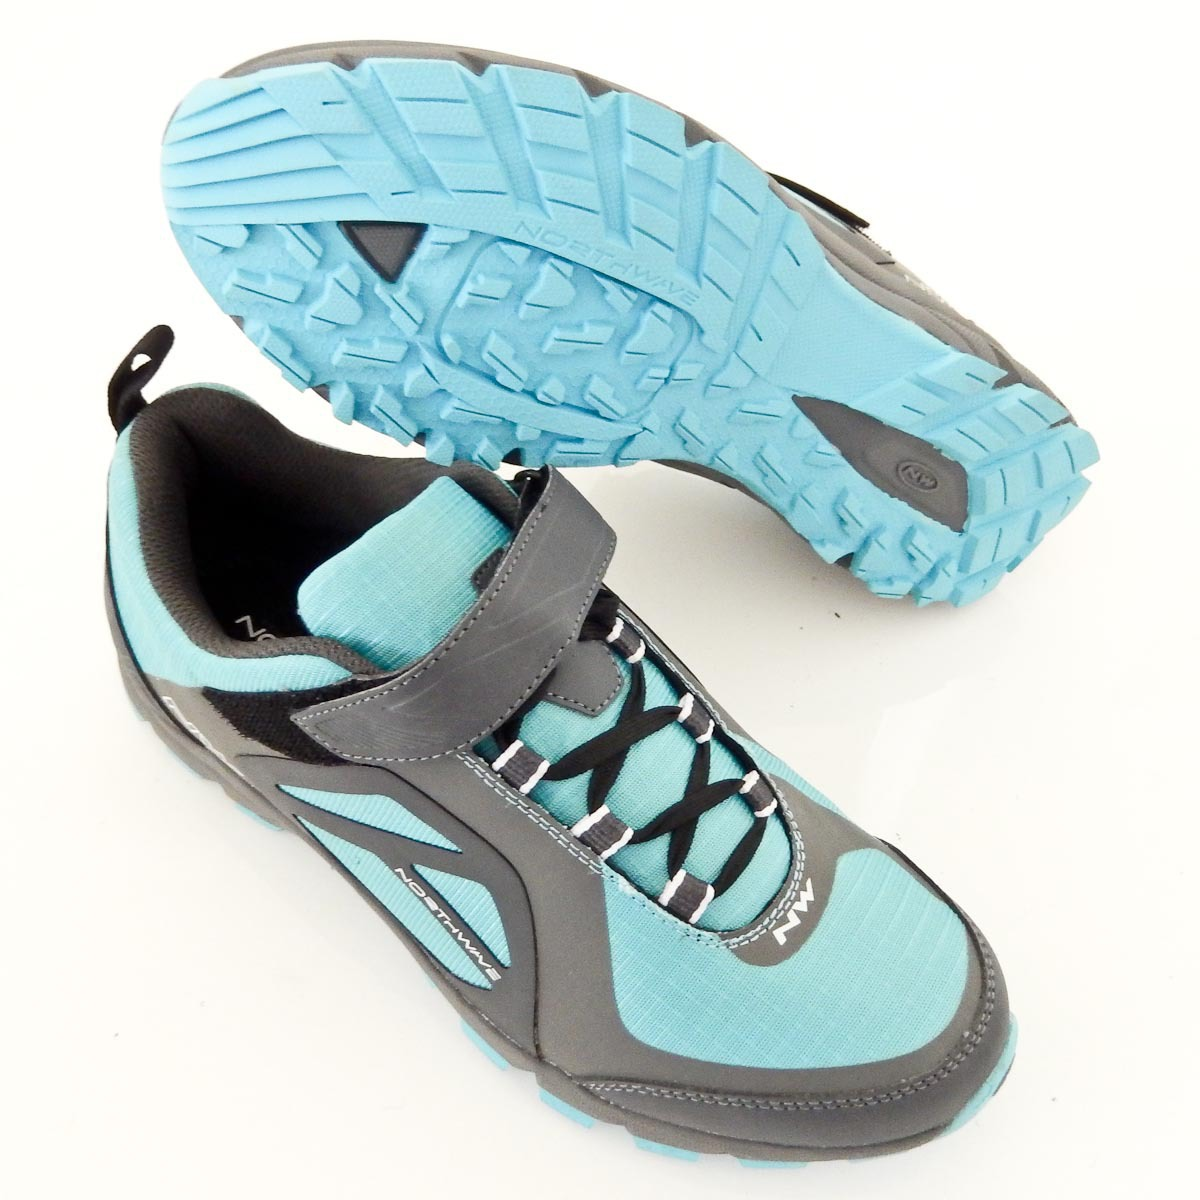 northwave escape evo cycling shoes mountain casual blue